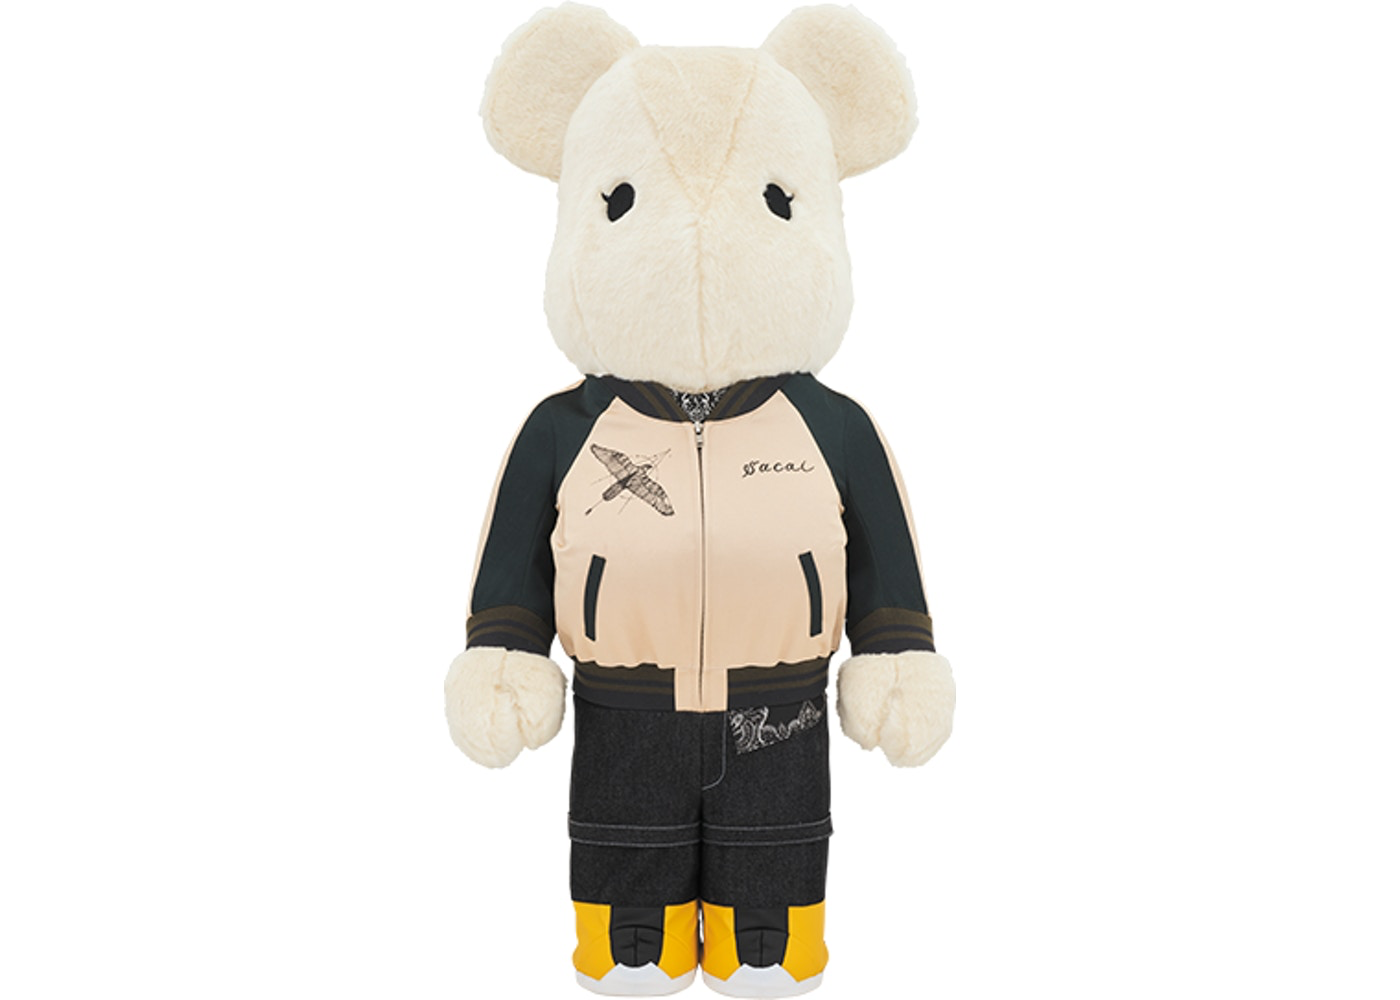 bearbrick-sacai-medicom-toy-plus-exclusive-1000-multi